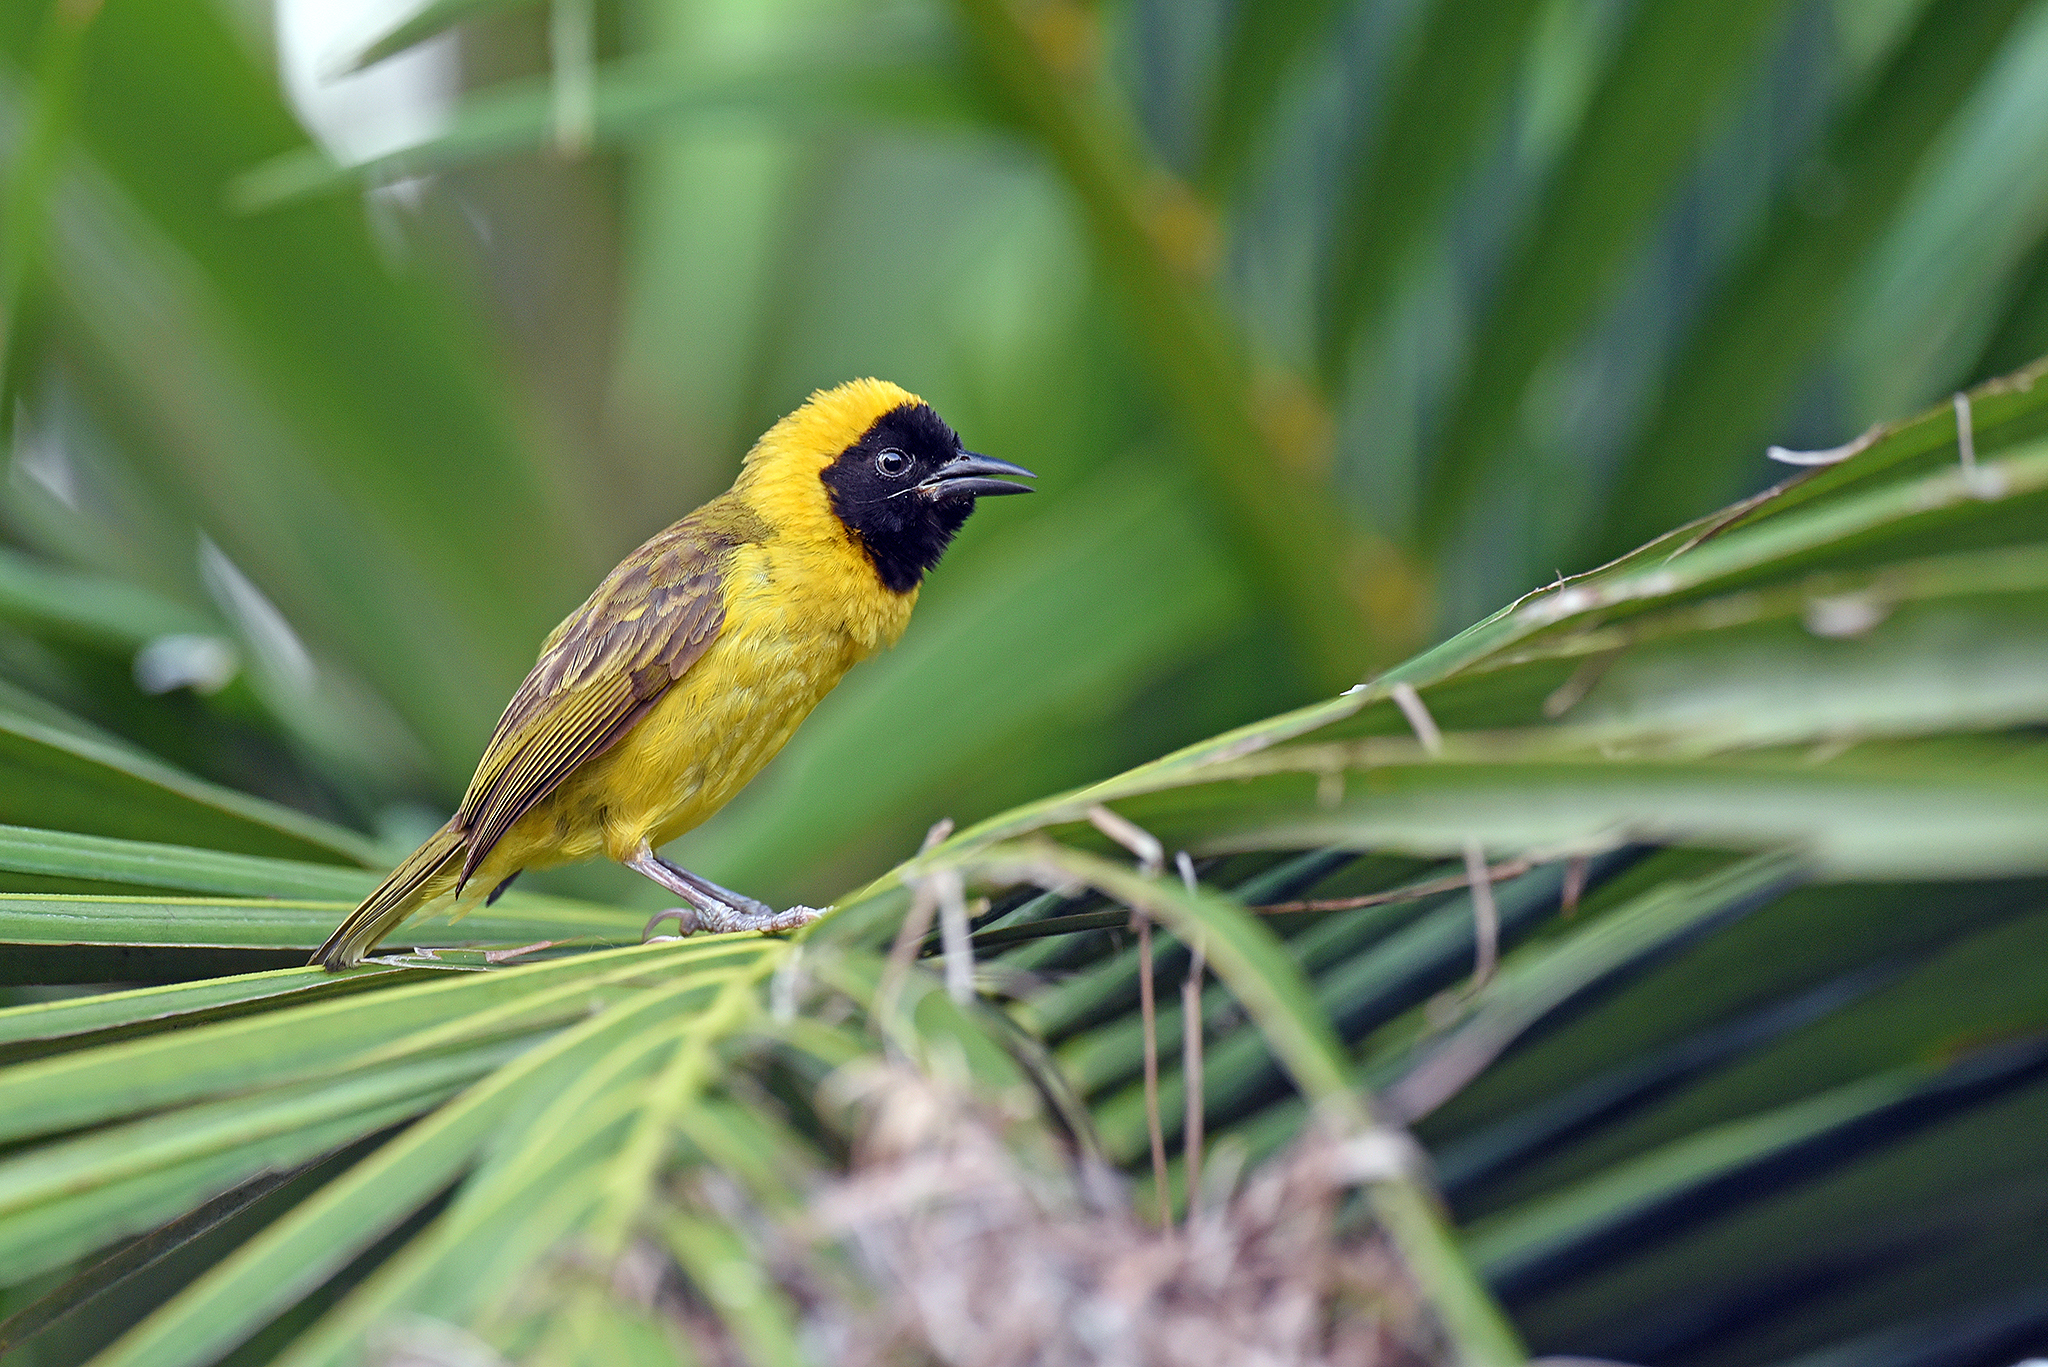 Slender-billed Weaver - Uganda - Rich Li